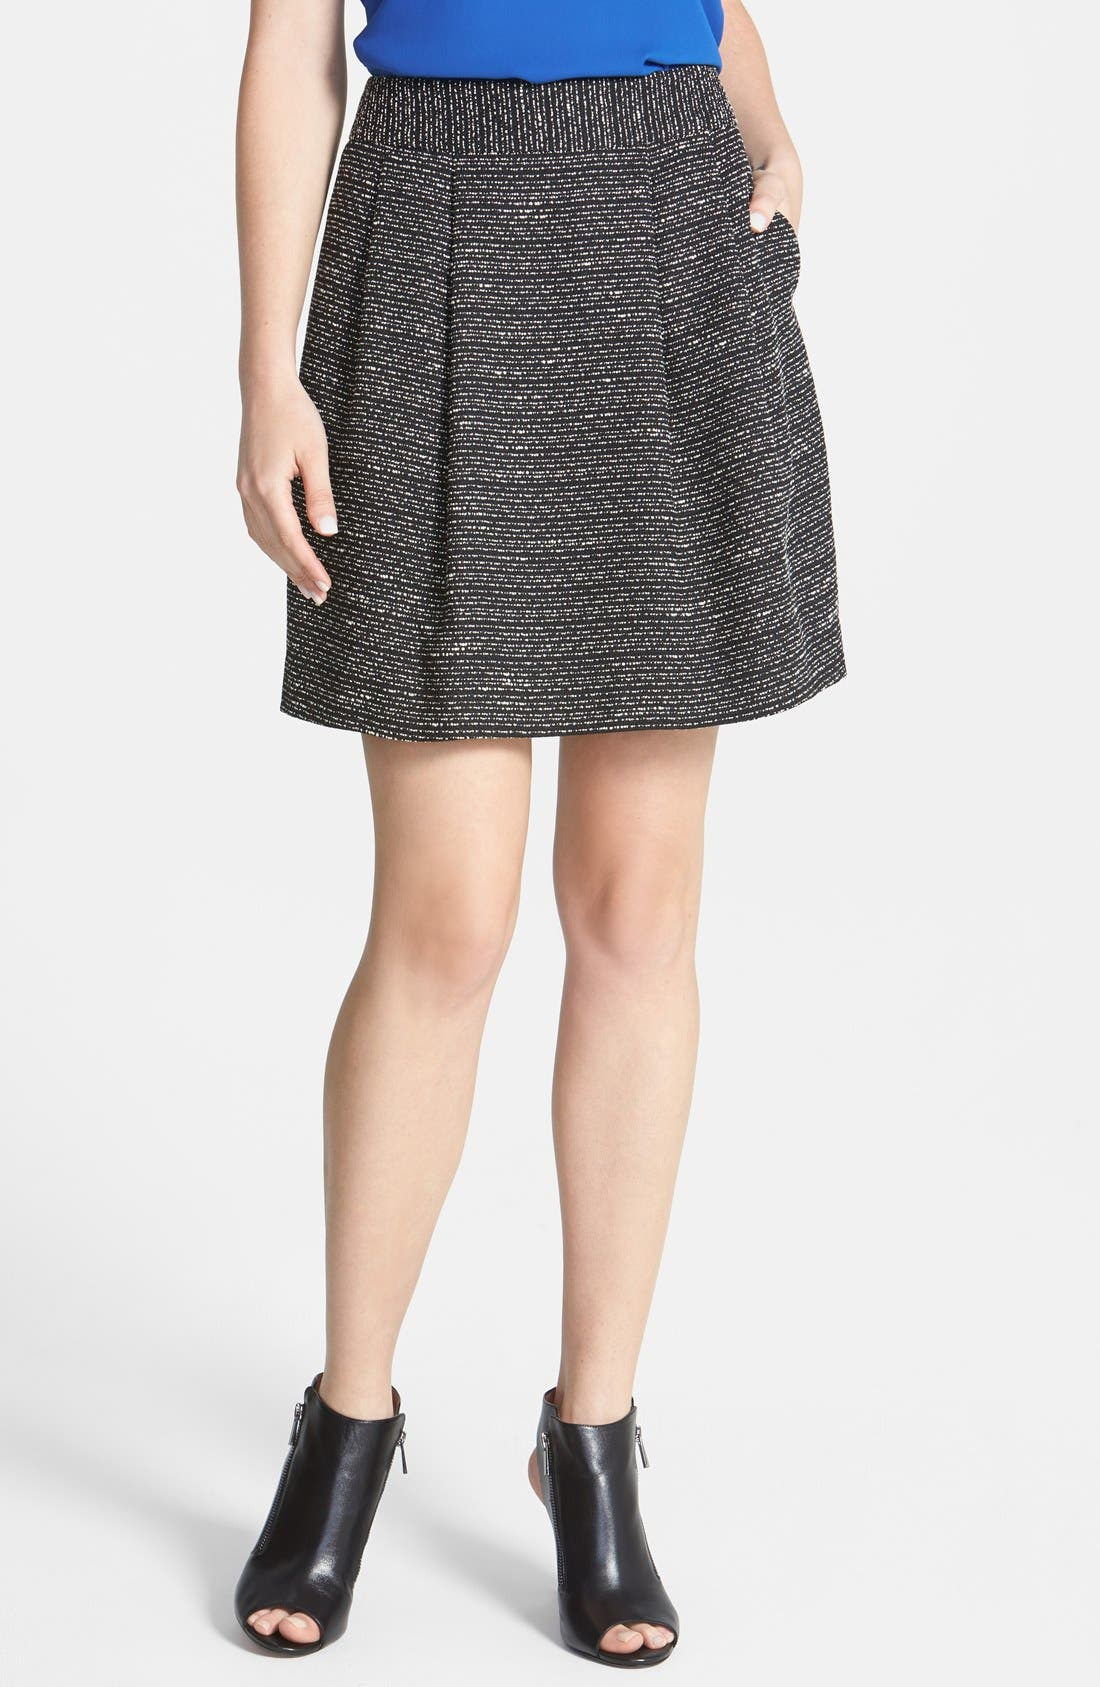 Alternate Image 1 Selected - Halogen® Pleat Tweed A-Line Skirt (Regular & Petite)